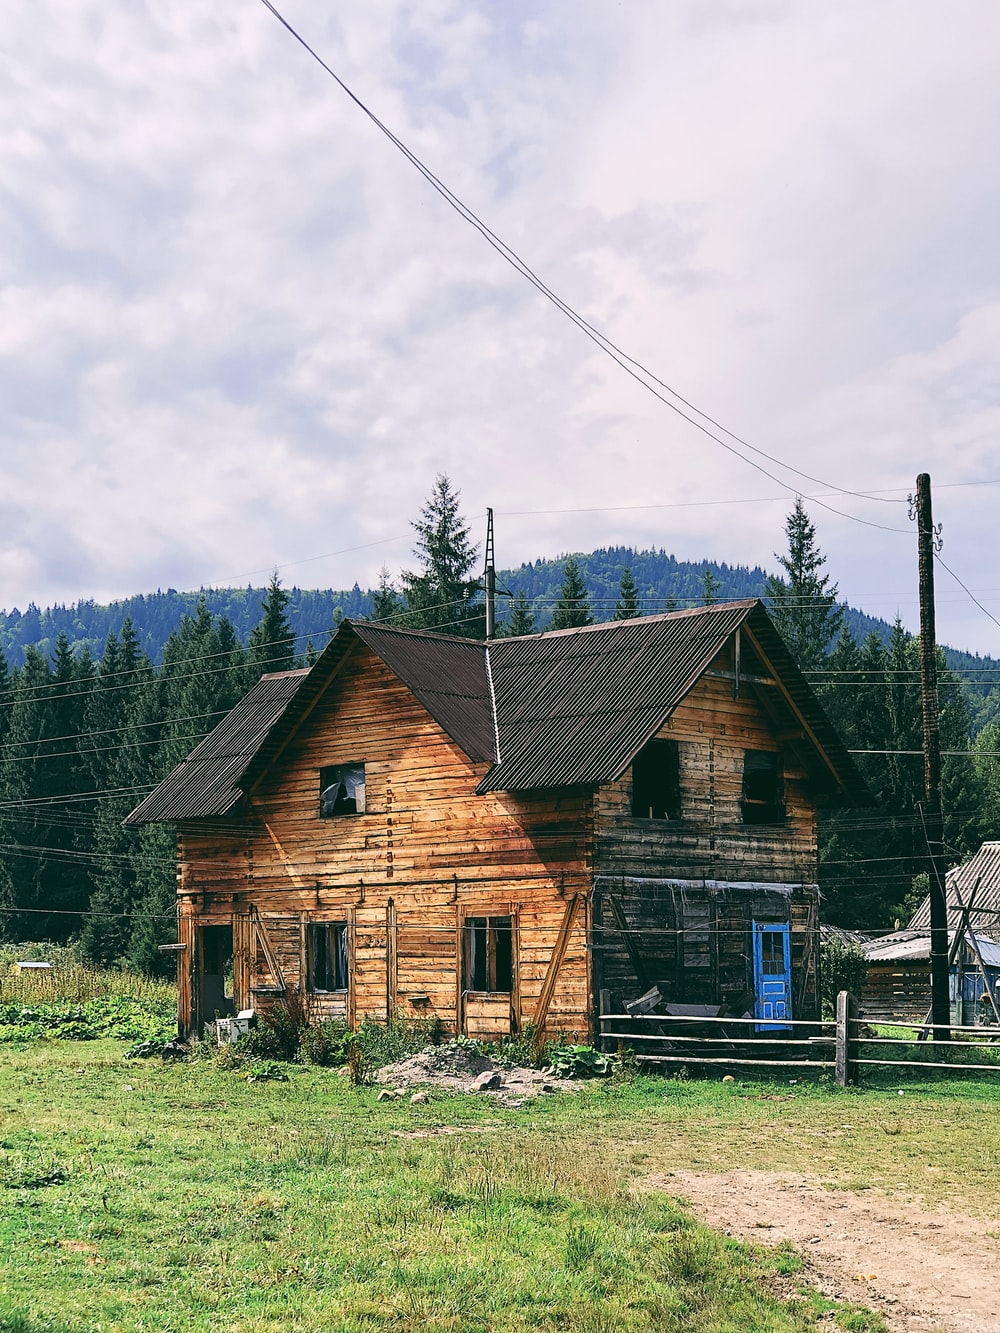 brown and black house near mountain at daytime